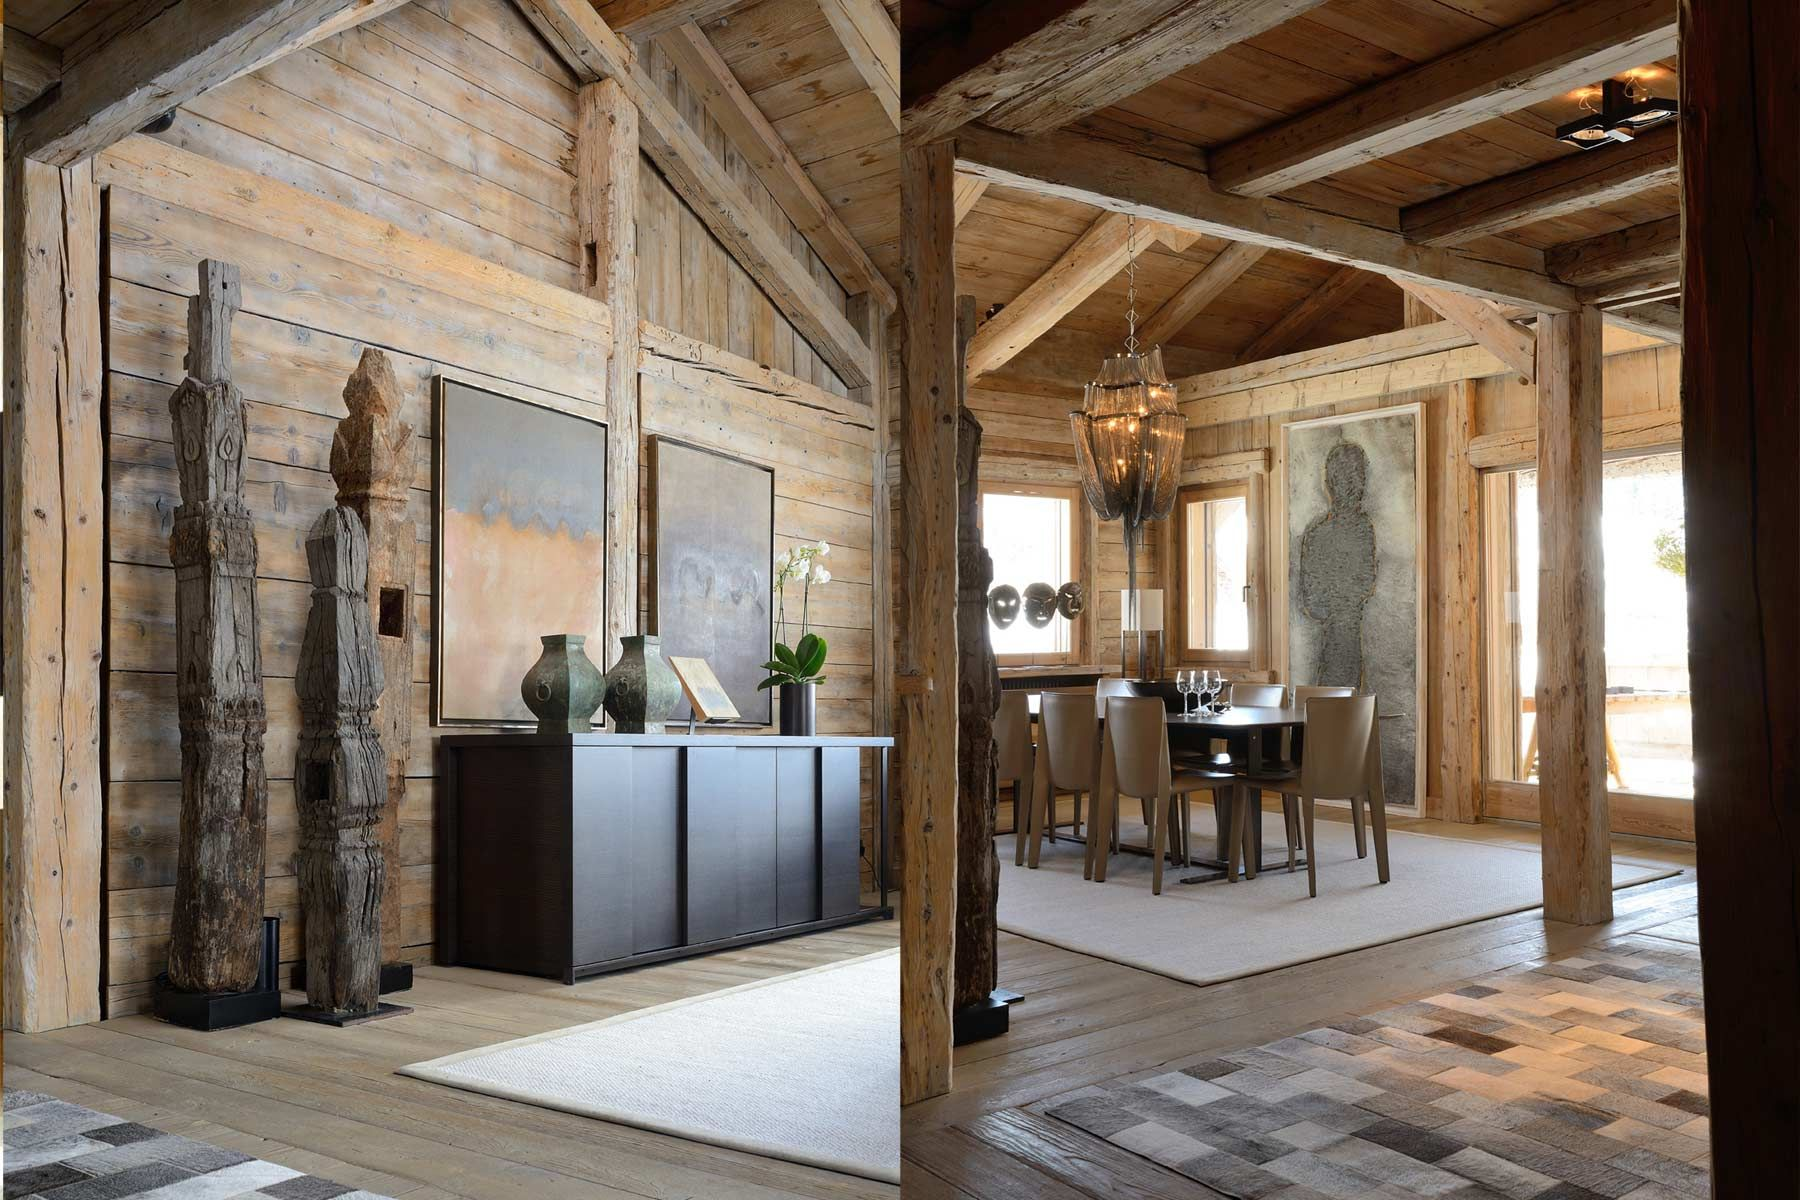 www.dorga.fr intemporel-decoration-interieur-chalet.php | Fuste ...